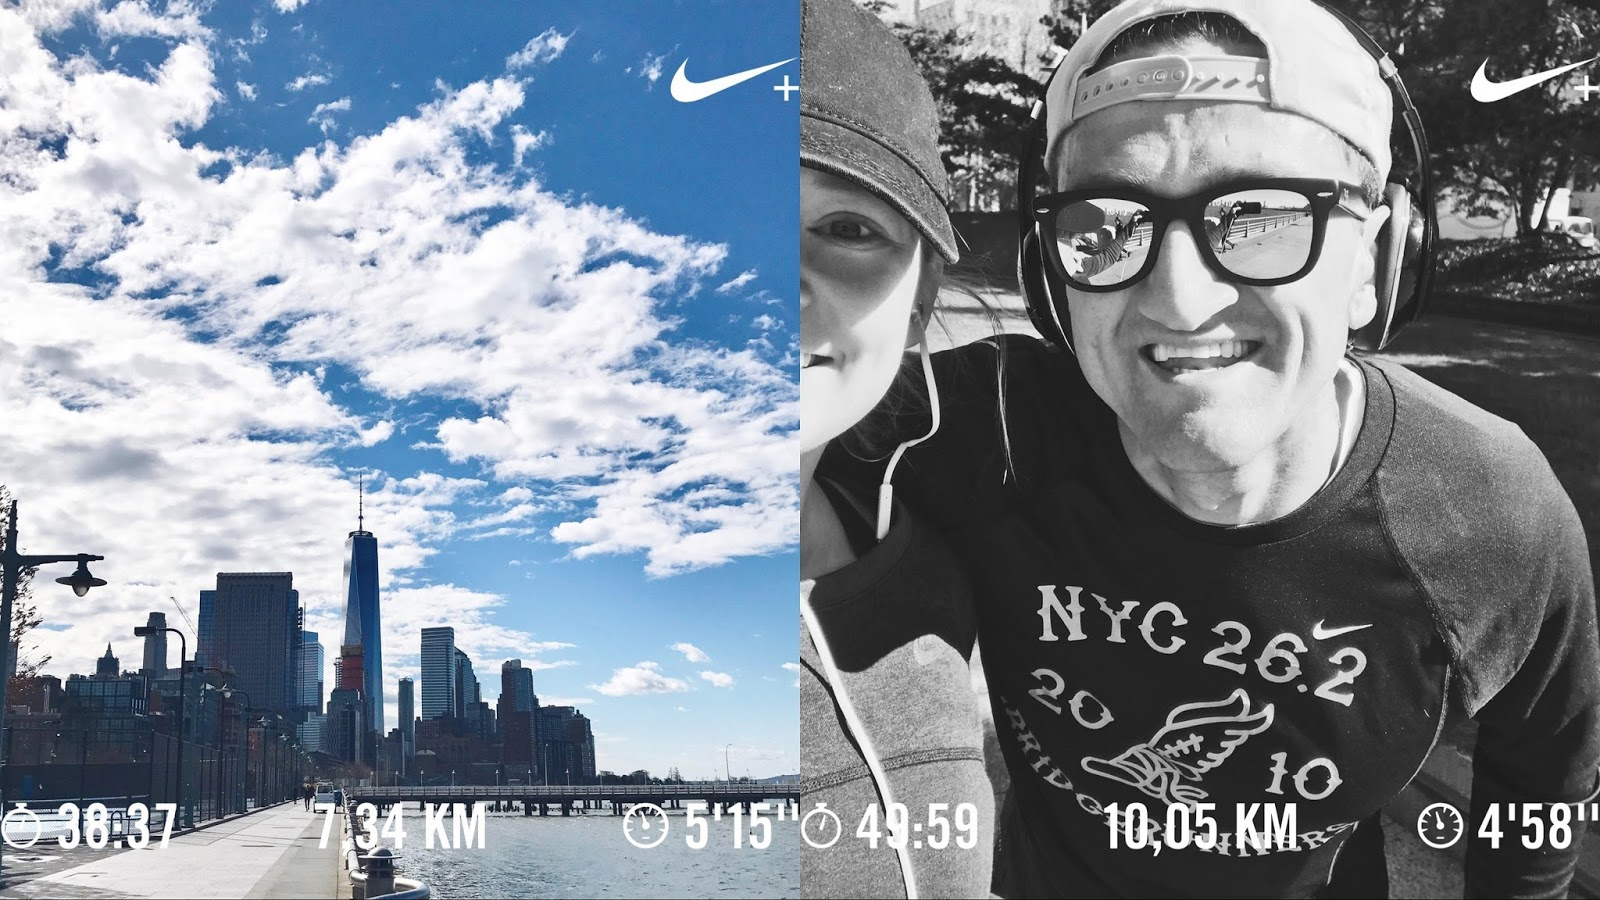 My first half marathon - meeting Casey Neistat westside highway